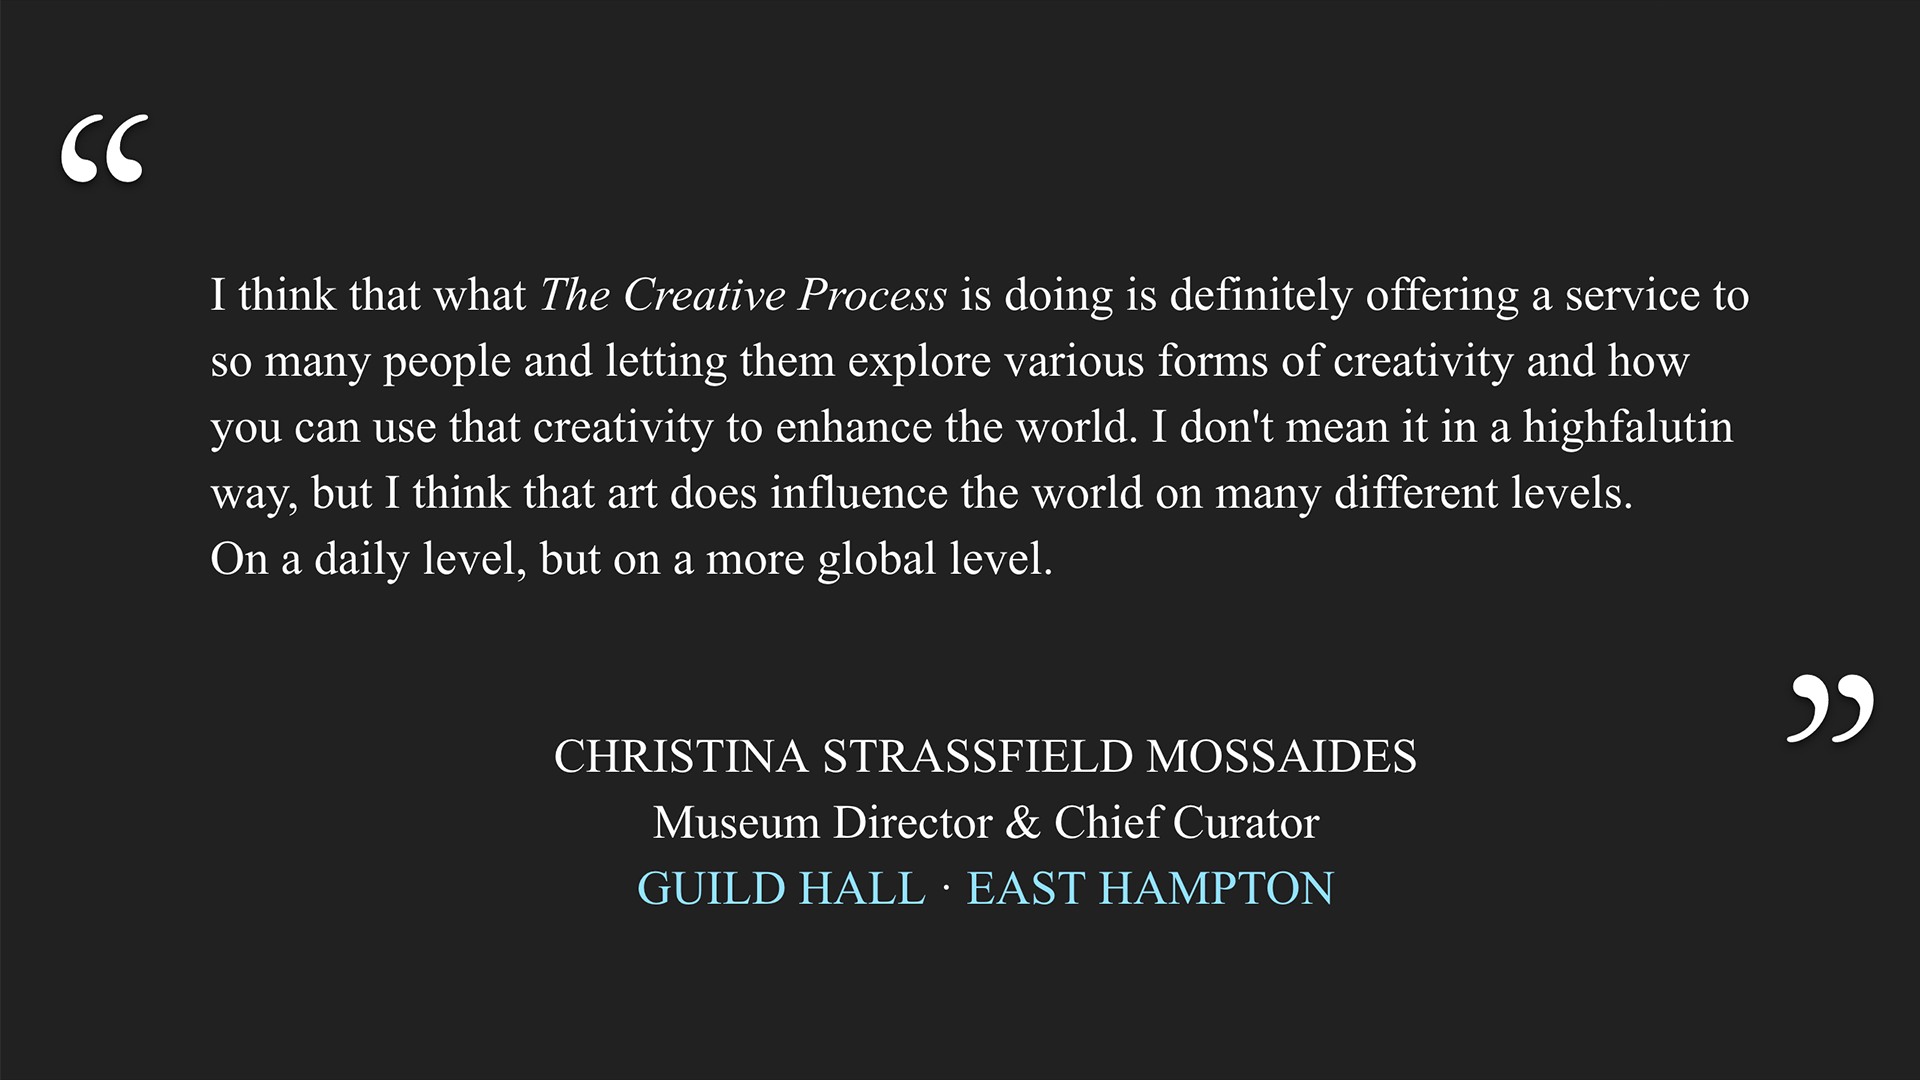 GUILD-HALL-THE-CREATIVE-PROCESS-MIA-FUNK-CHRISTINA-MOSSAIDES-STRASSFIELD.png